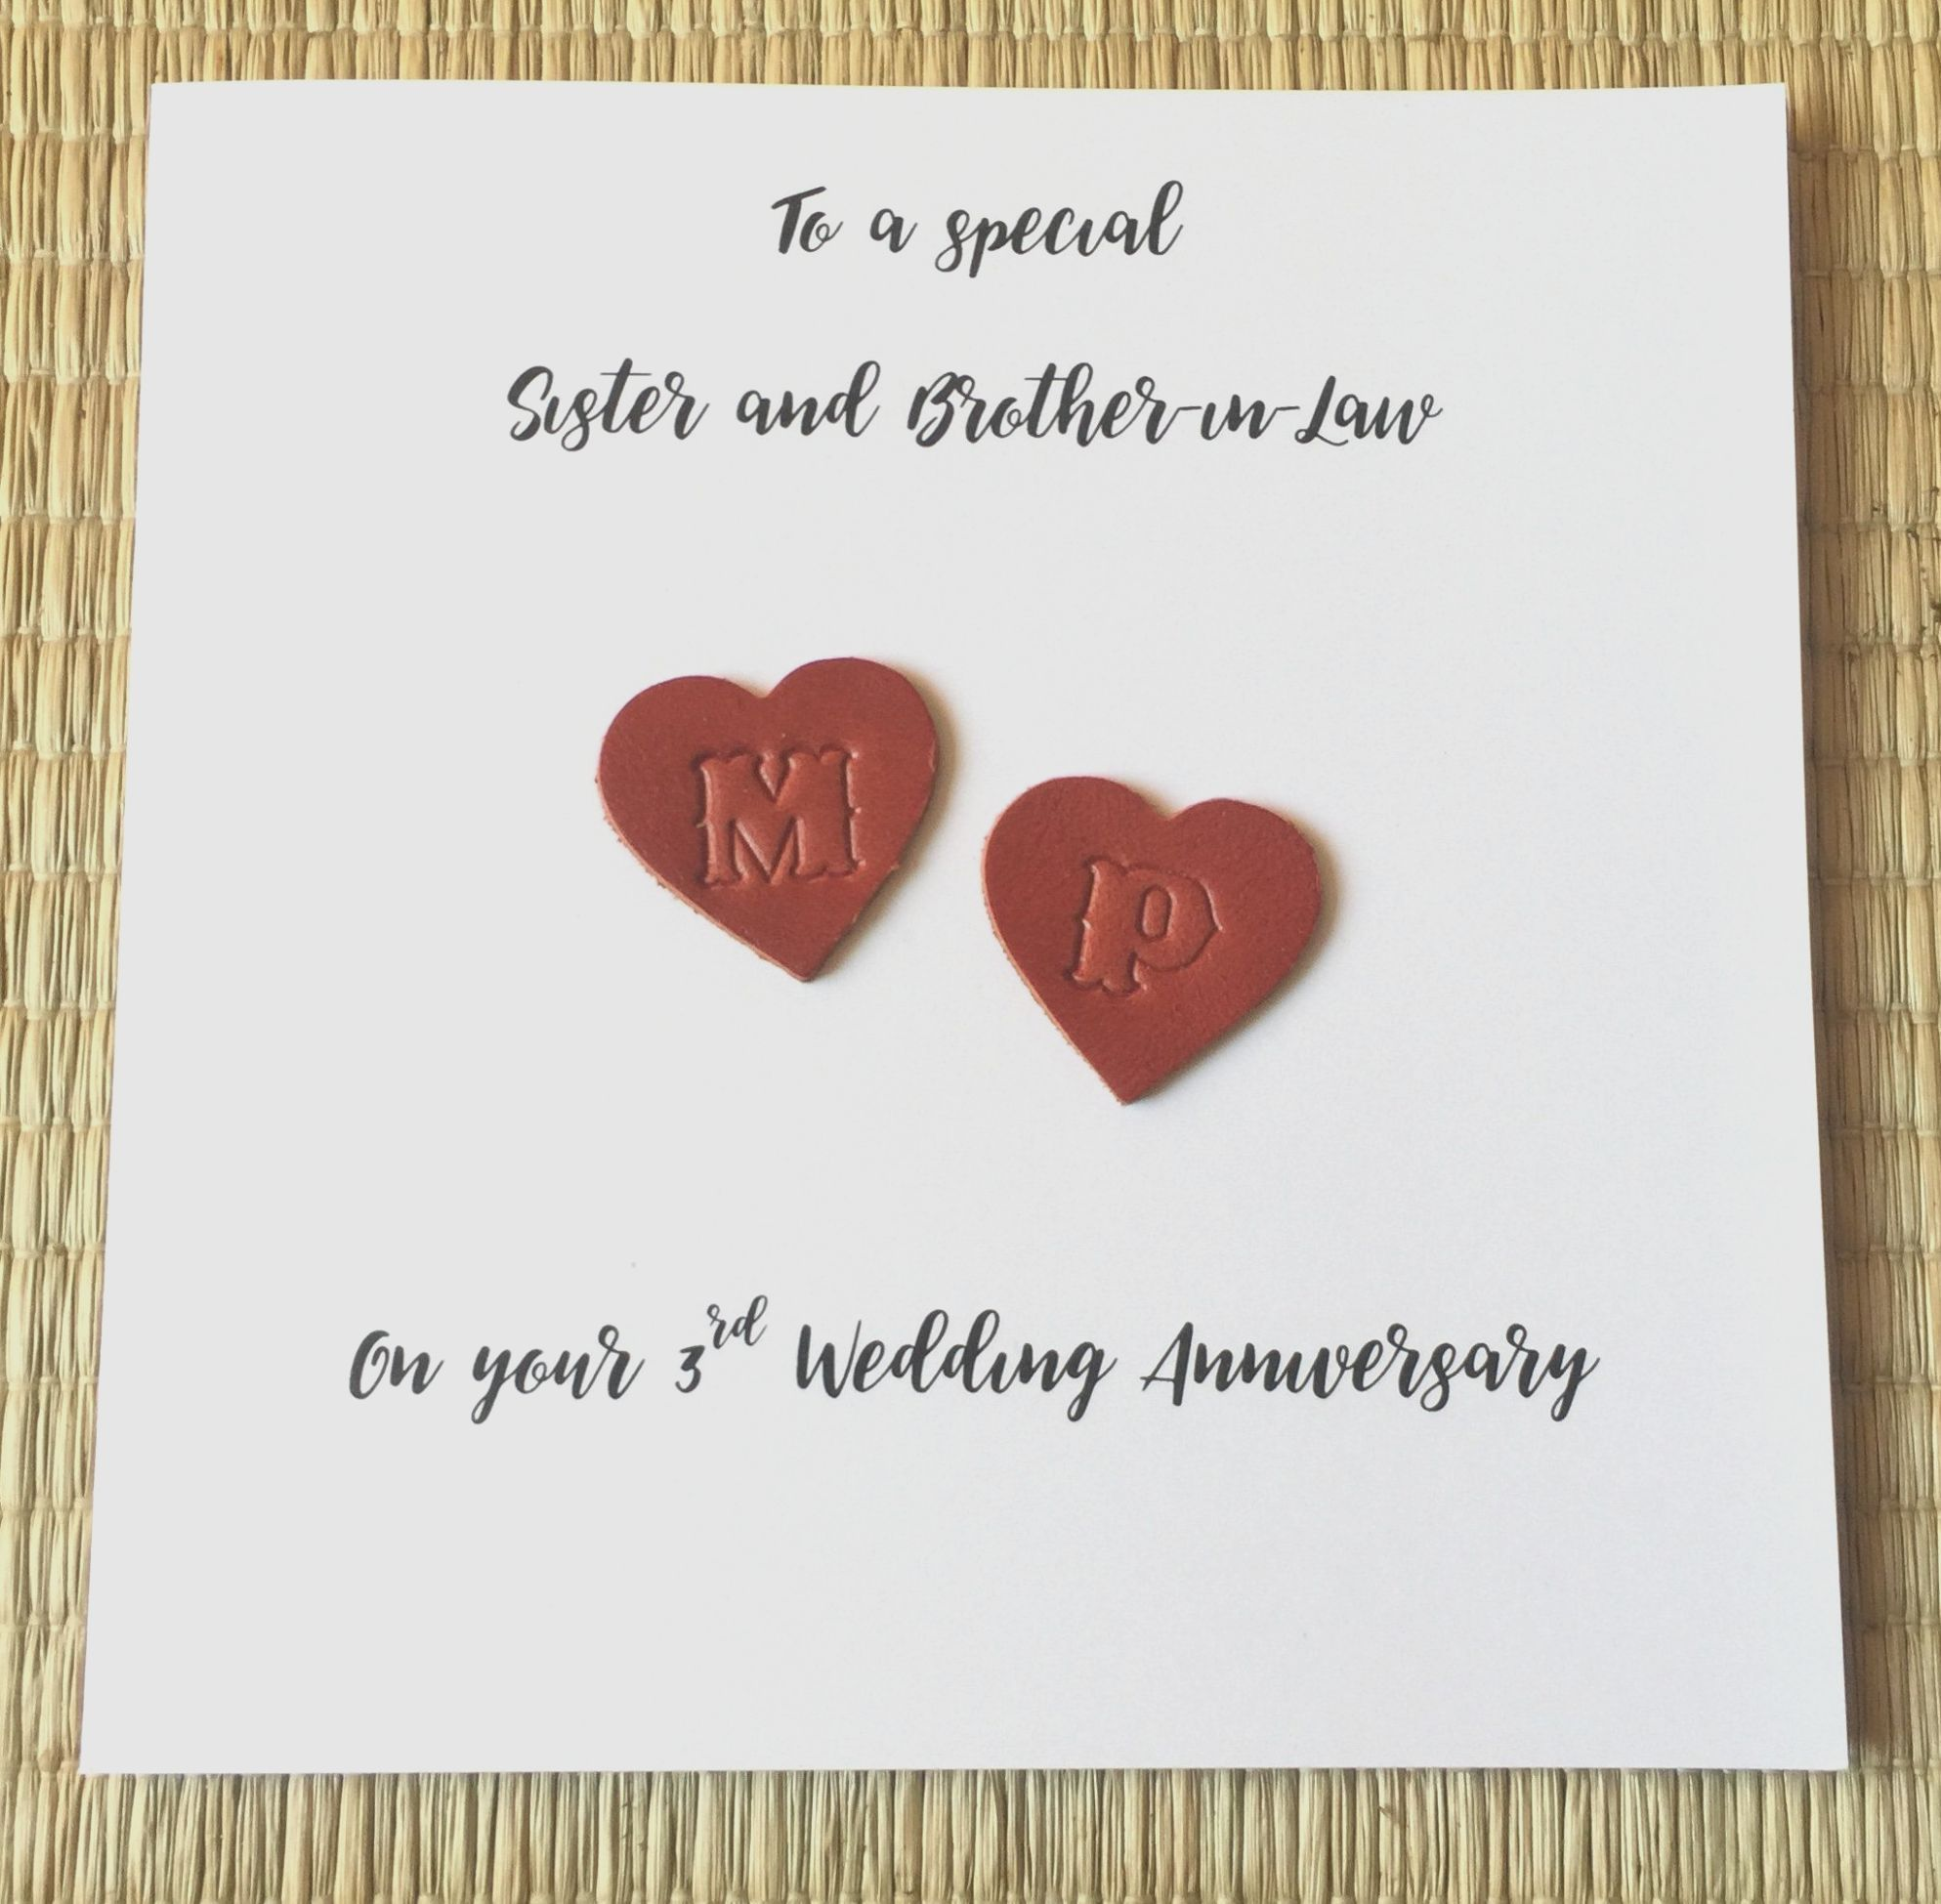 6 Leather Wedding Anniversary Card Leather Wedding Anniversary Card Wedding Anniversary Cards 3rd Wedding Anniversary